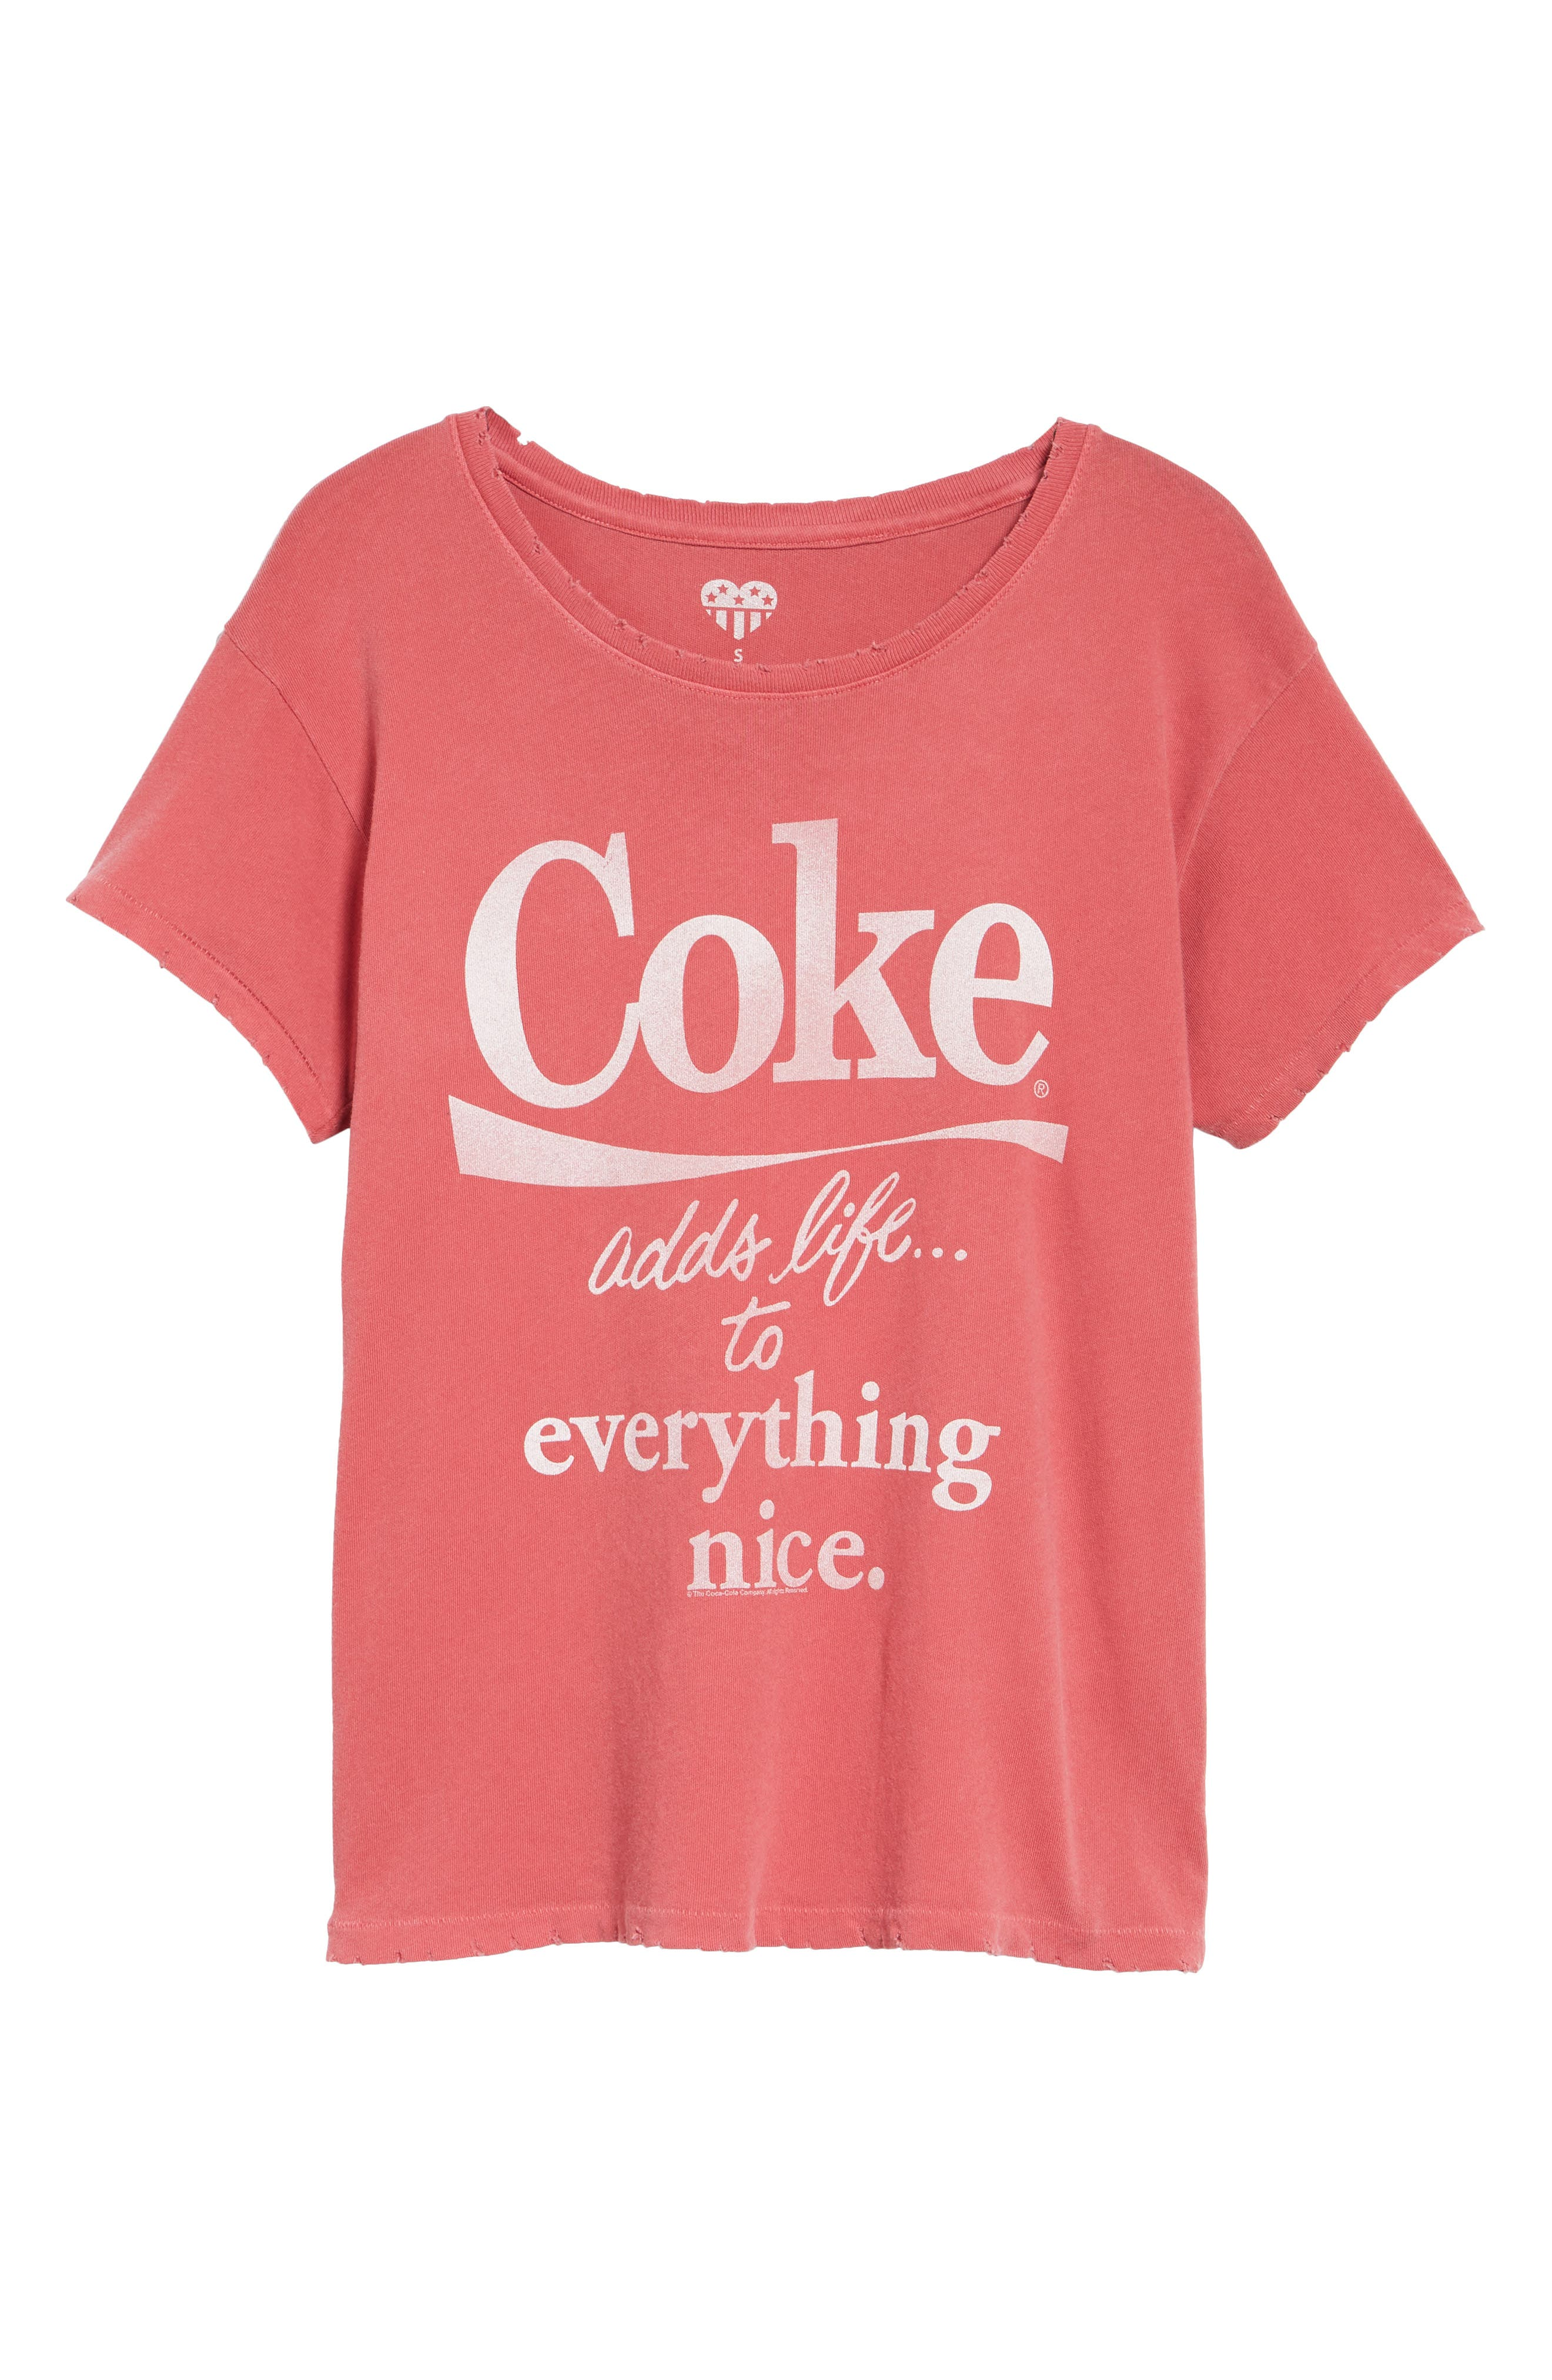 Coke Tee,                             Alternate thumbnail 7, color,                             Washed Red